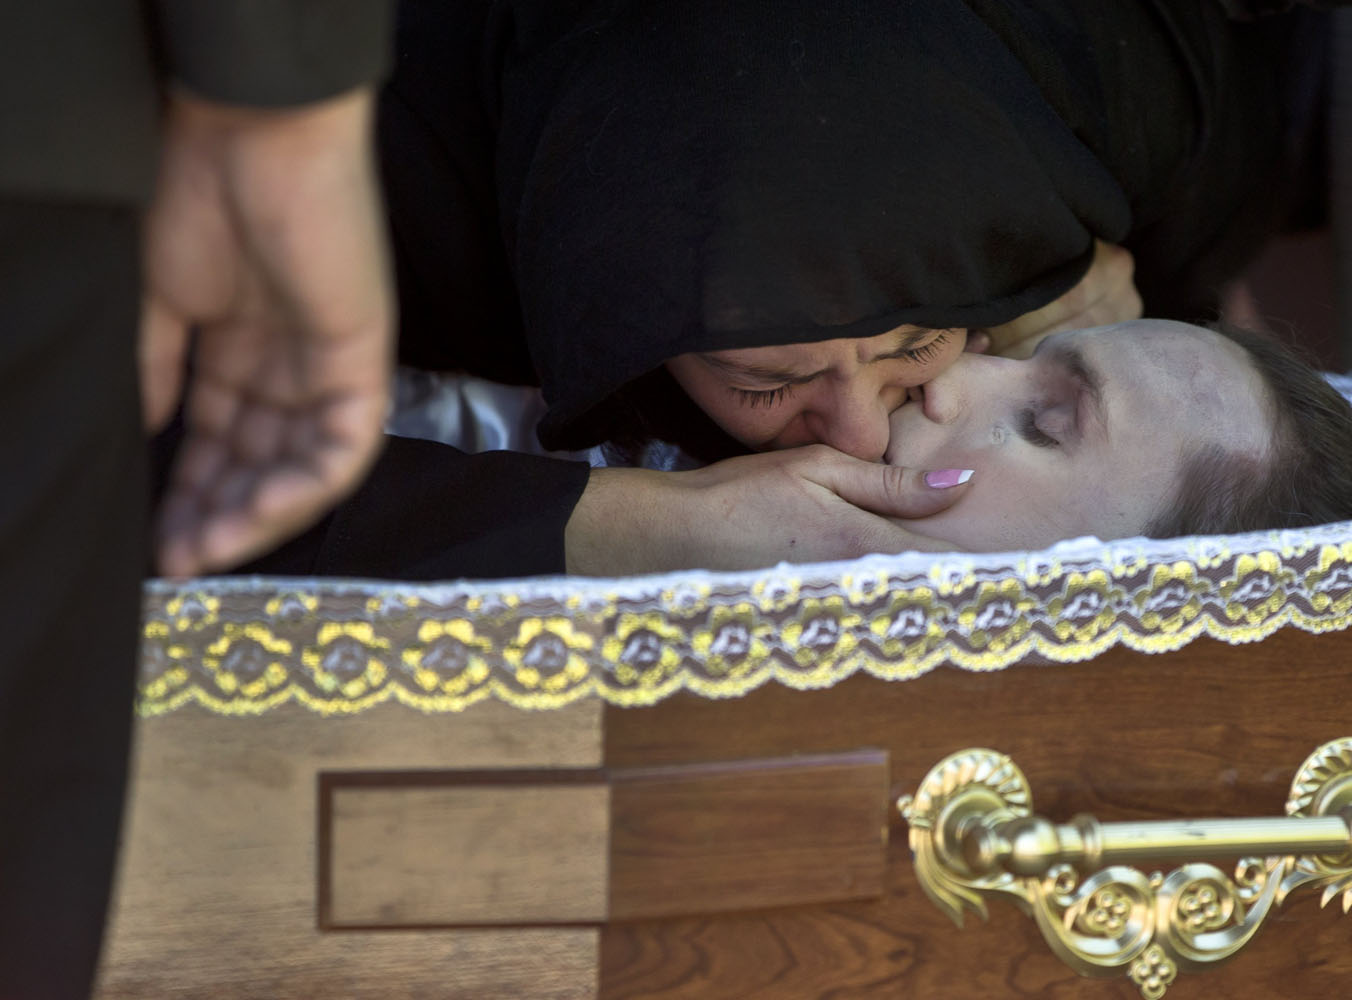 May 7, 2014. The girlfriend of Andrei Brazhevskiy, a pro-Russian activist, kisses him before the coffin is closed during the funeral in Odessa, Ukraine, Brazhevskiy, 27, died after jumping out of the burning trade union building in an attempt to escape Friday's fire that killed most of the 40 people that died after riots erupted.